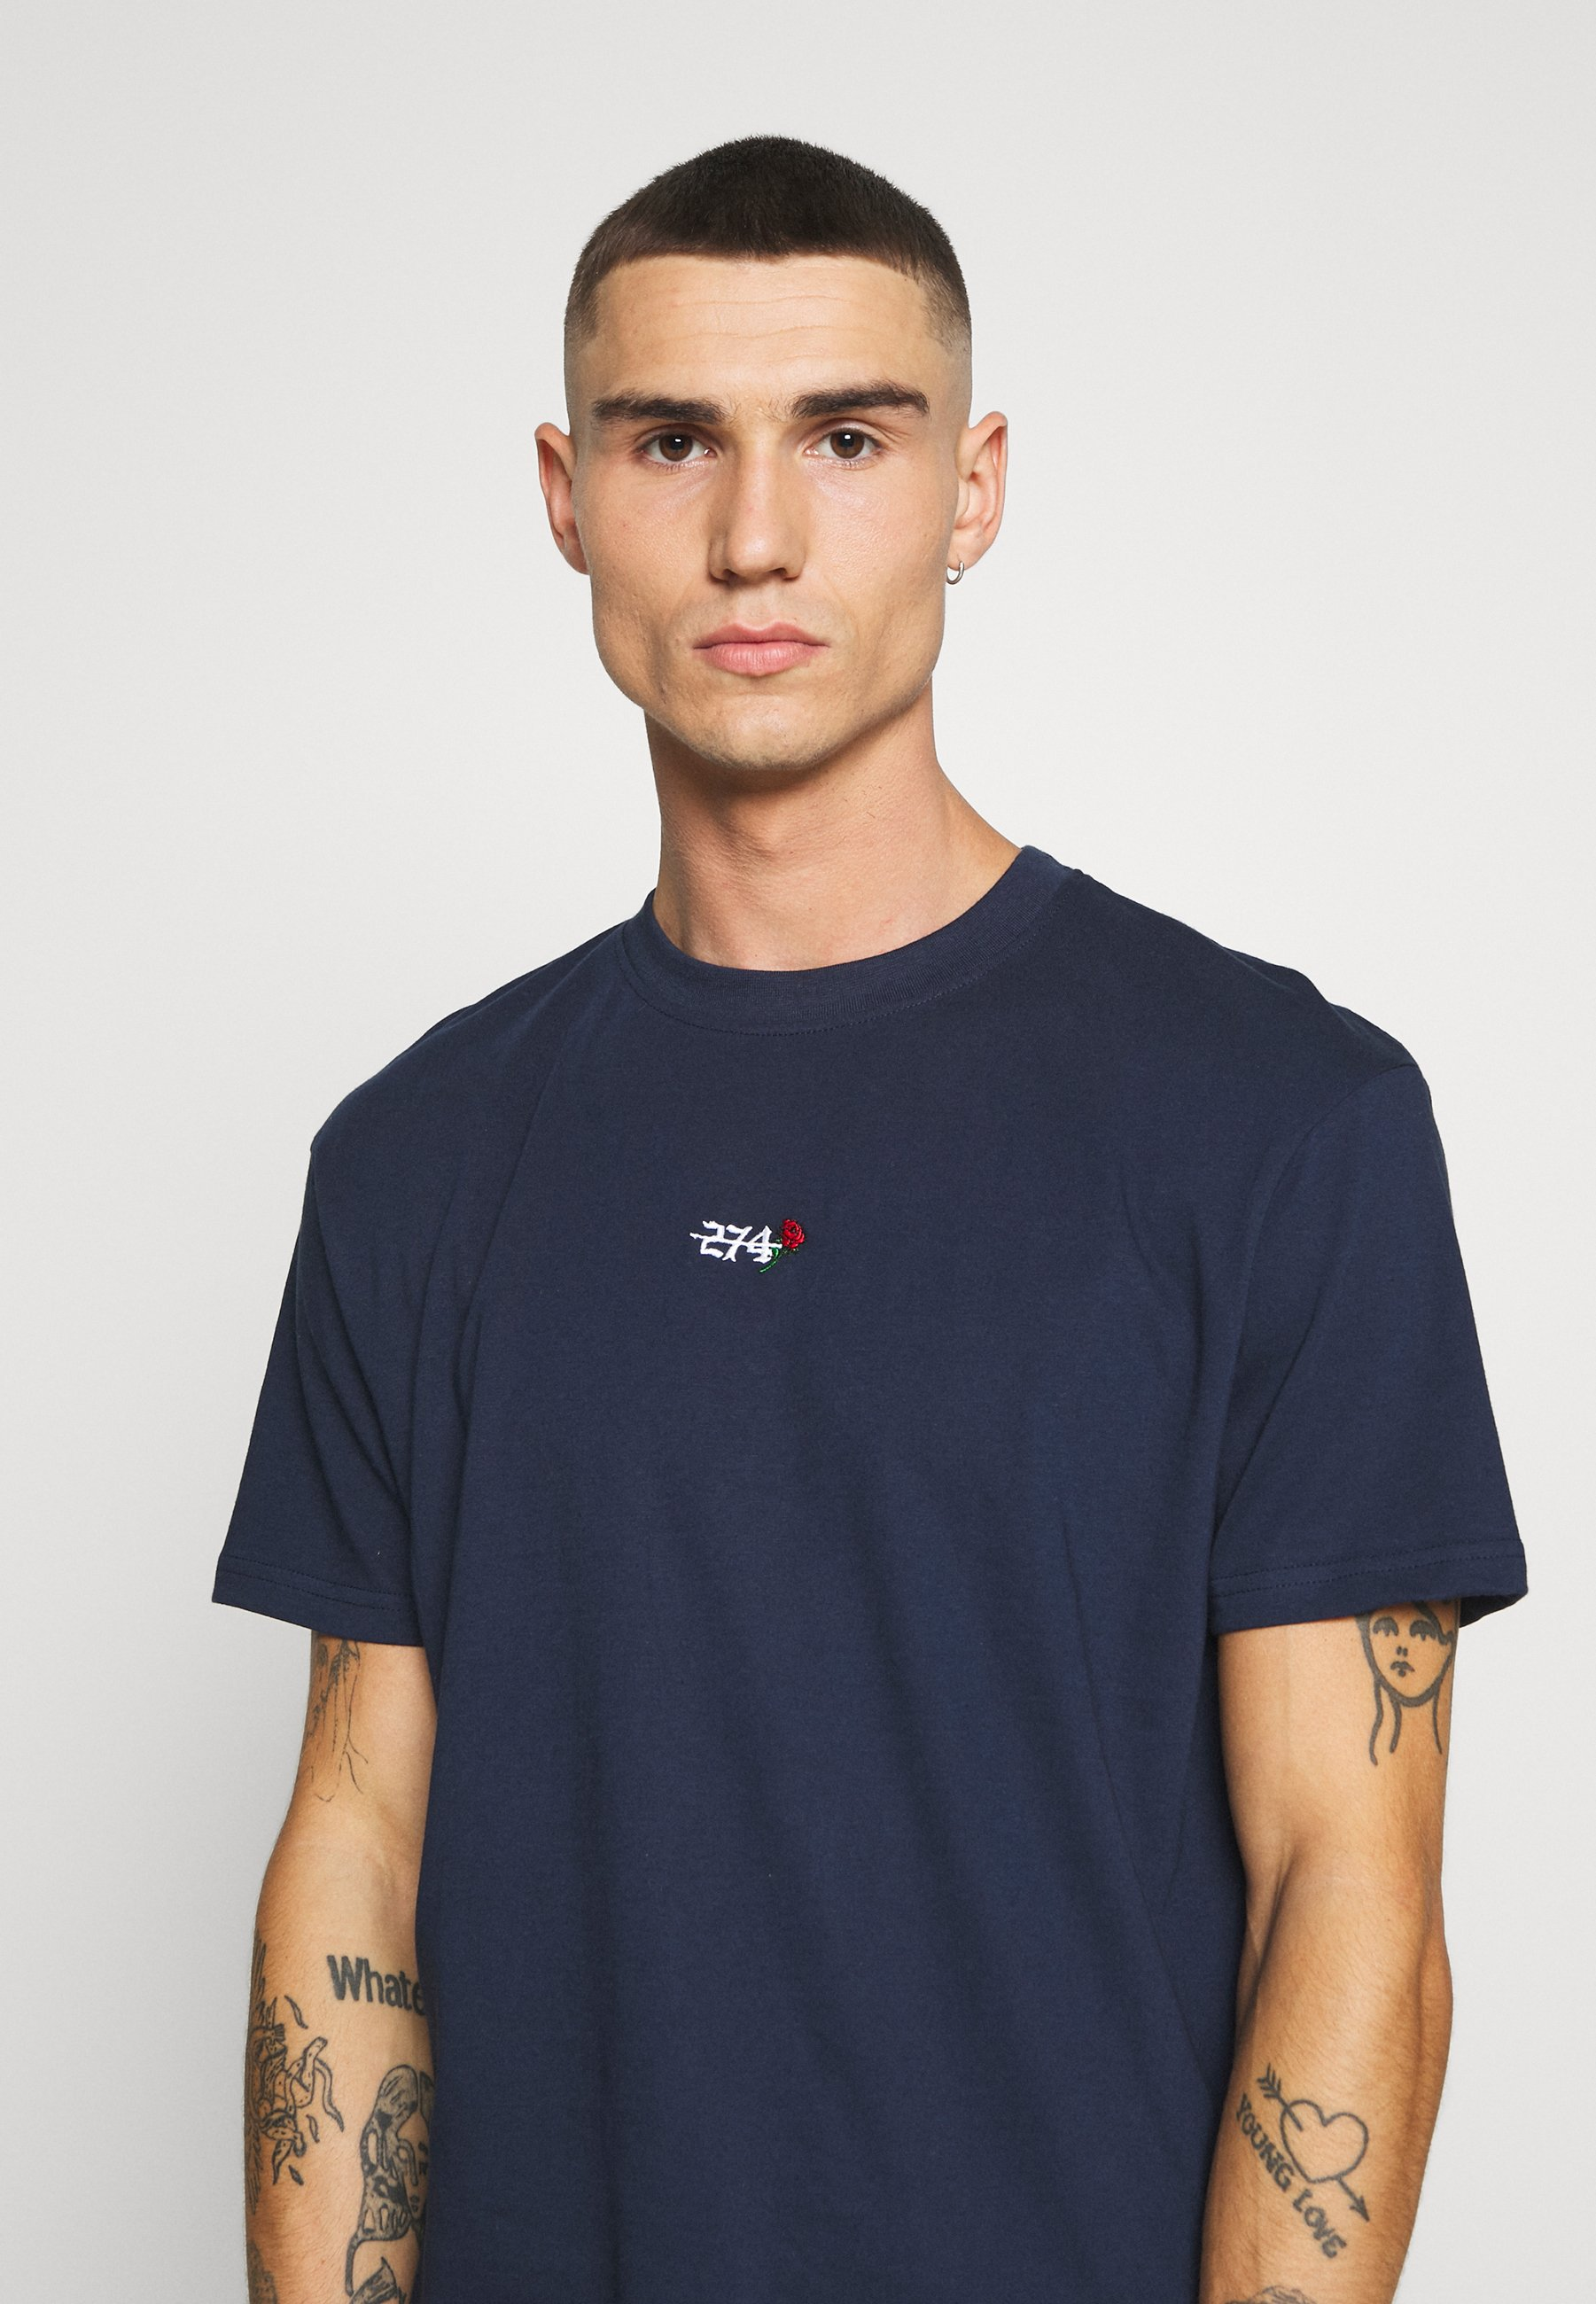 274 CREEK TEE - Basic T-shirt - navy S3N6y